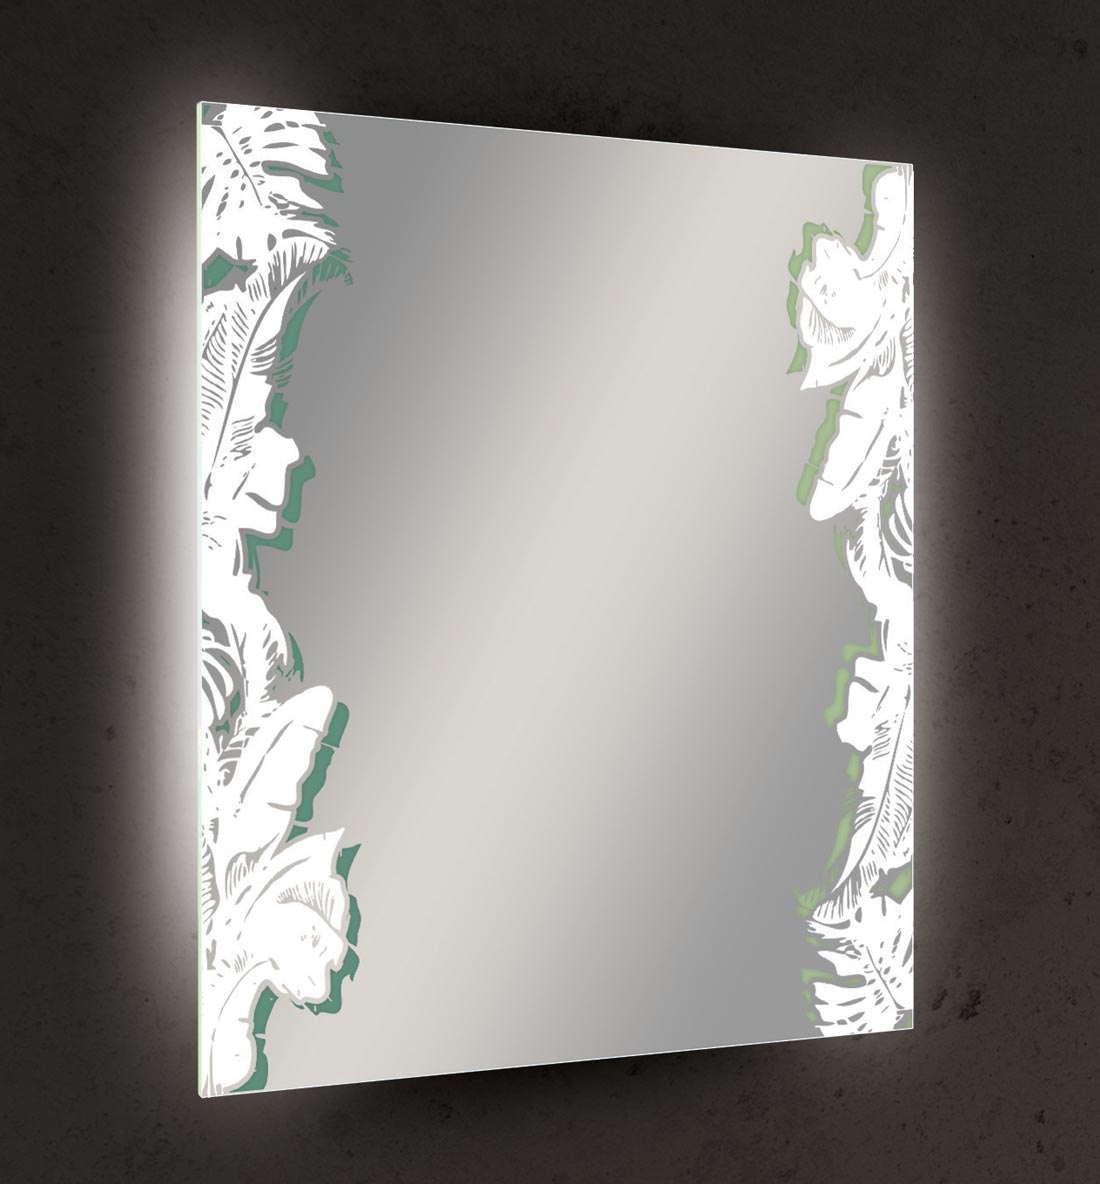 Seura's Wanderlust Lighted Mirror features tropical-inspired leaves etched down either side.